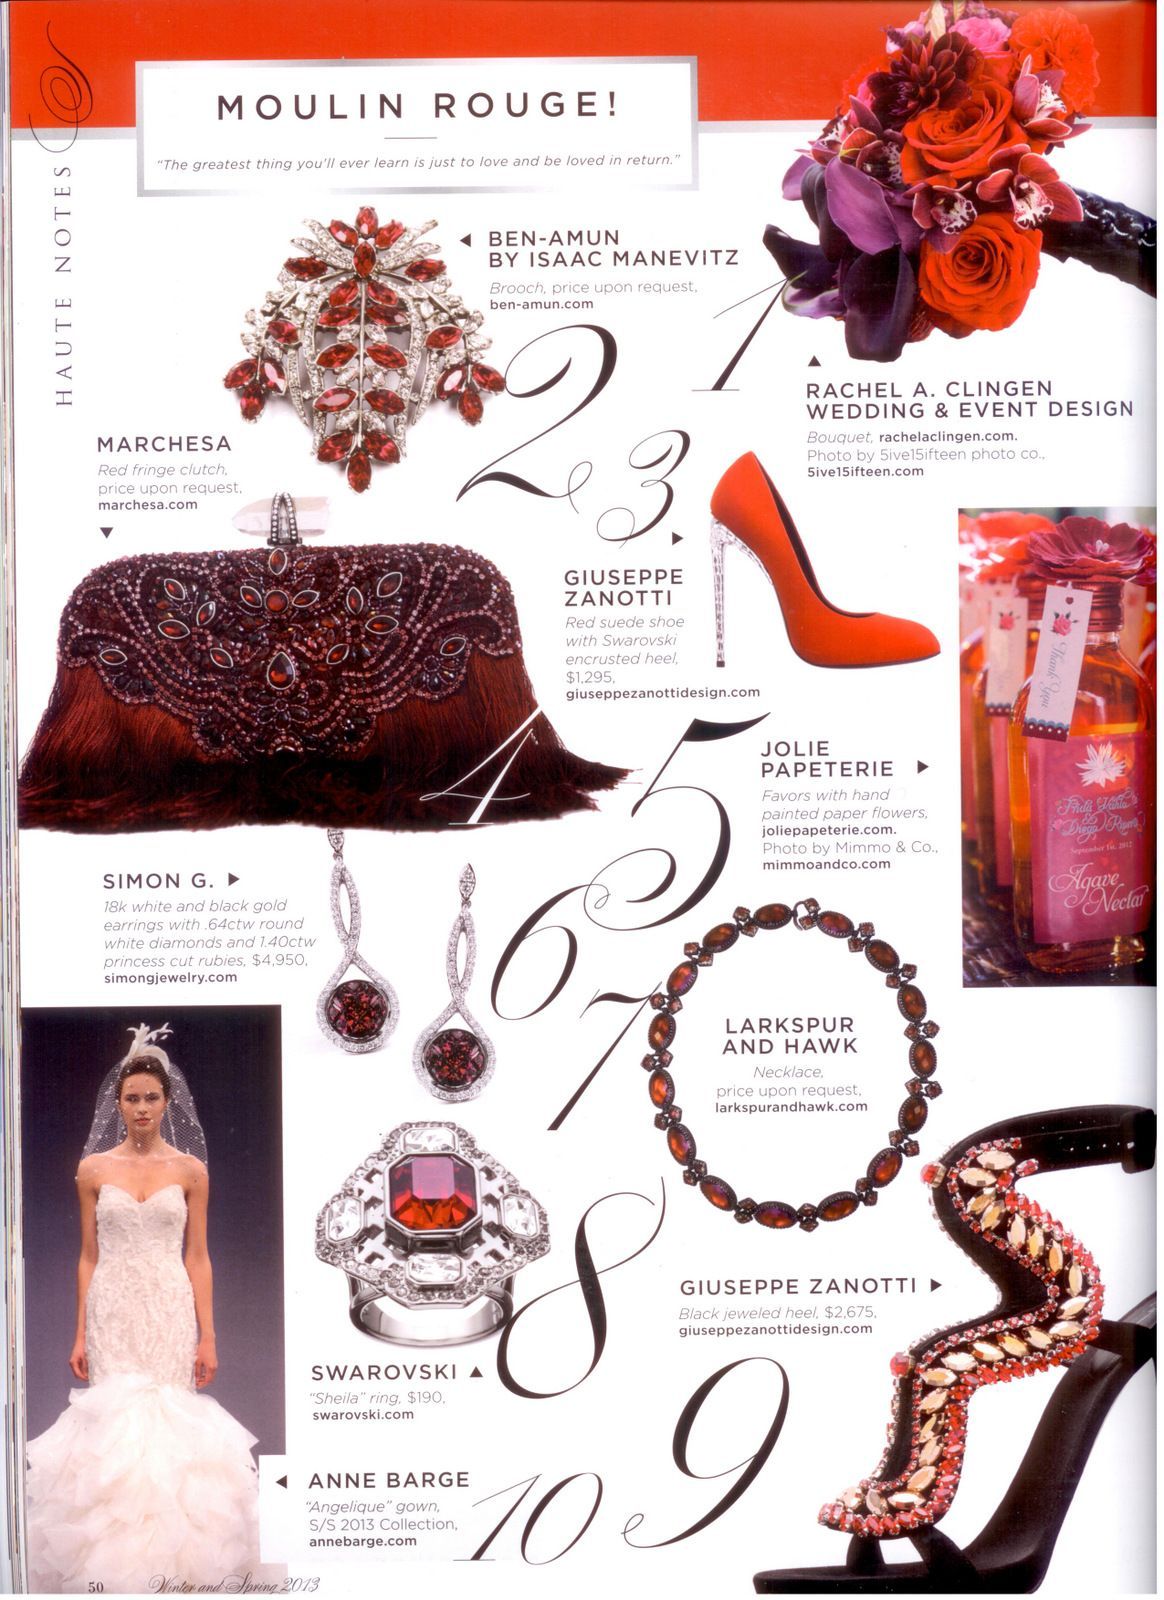 Moulin Rouge wedding inspiration  In the Press